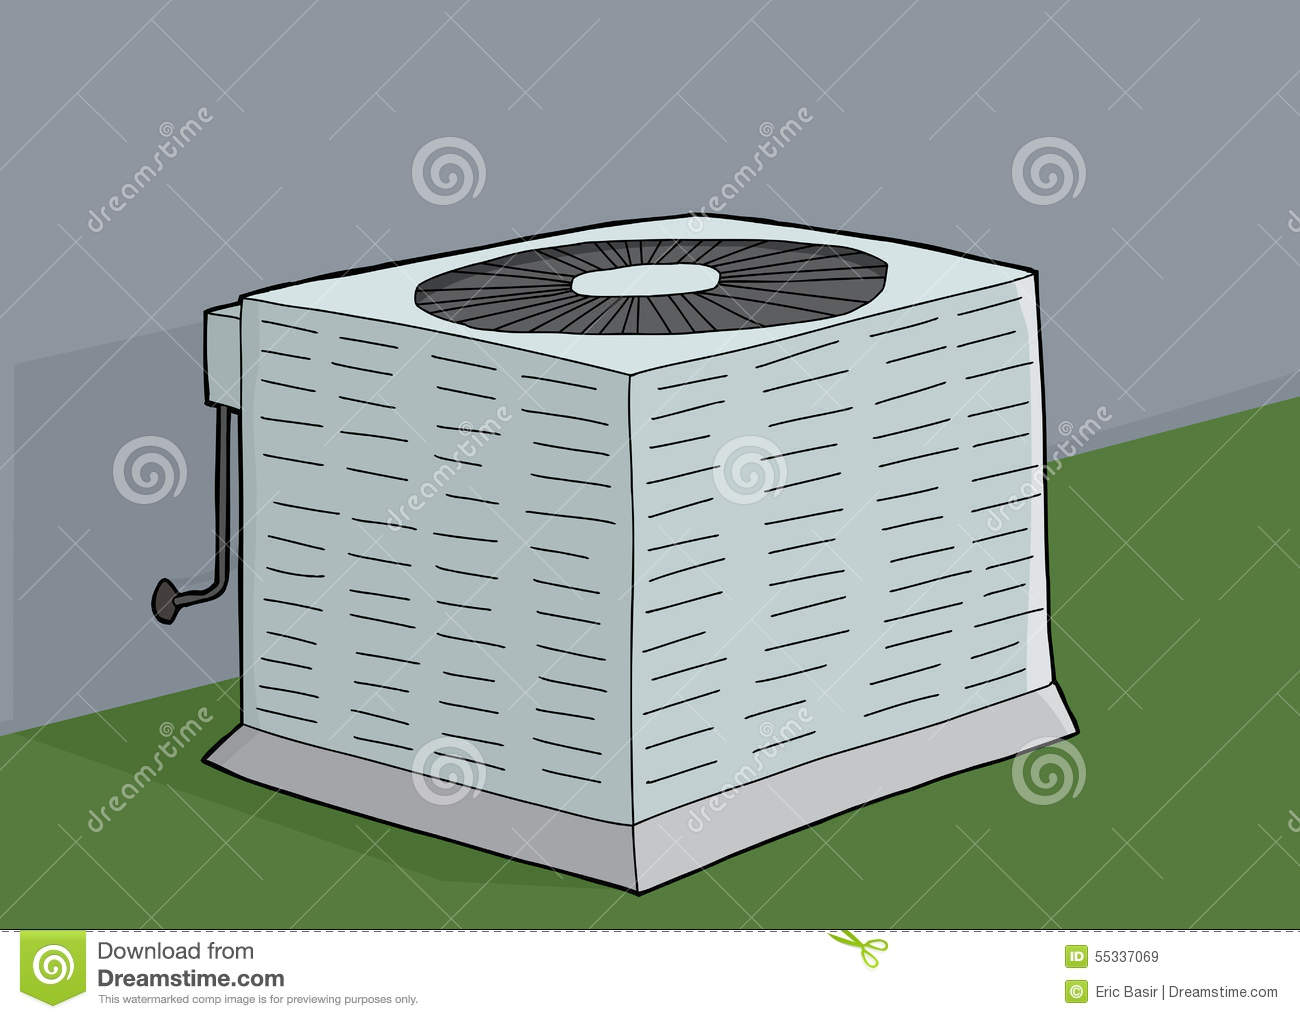 Central Air Conditioner Stock Illustration Image: 55337069 #83A328